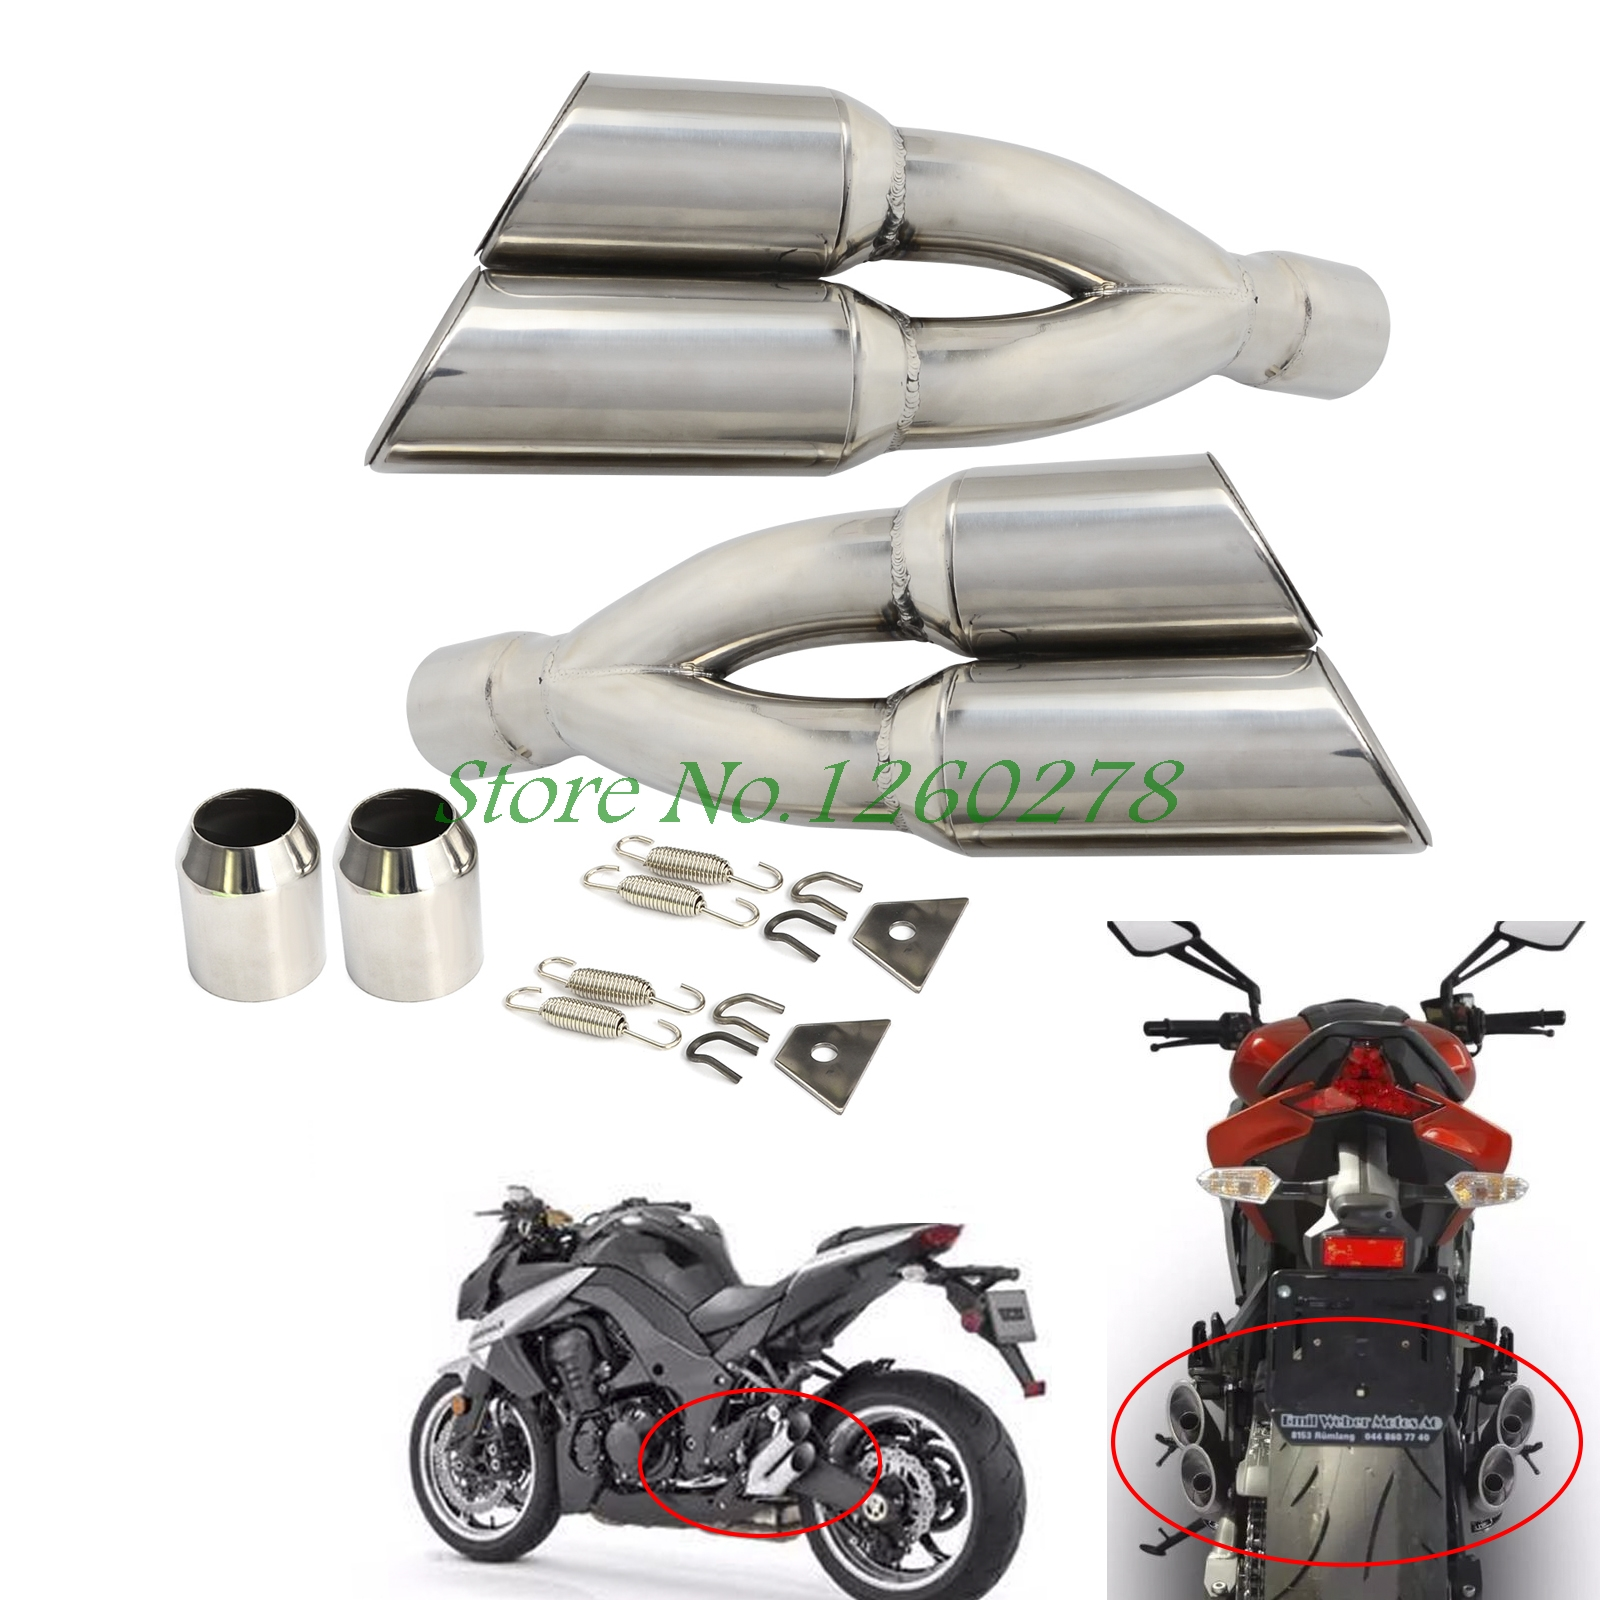 Universal Dual Exhaust Muffler Pipe Slip On For Motorcycle Motocross Supermoto Street Bike Scooter ATV Quad Dirt Bike Off Road crf50 frame battery box dirt pit bike case holder off road motorcycle apollo 110 chinese motocross